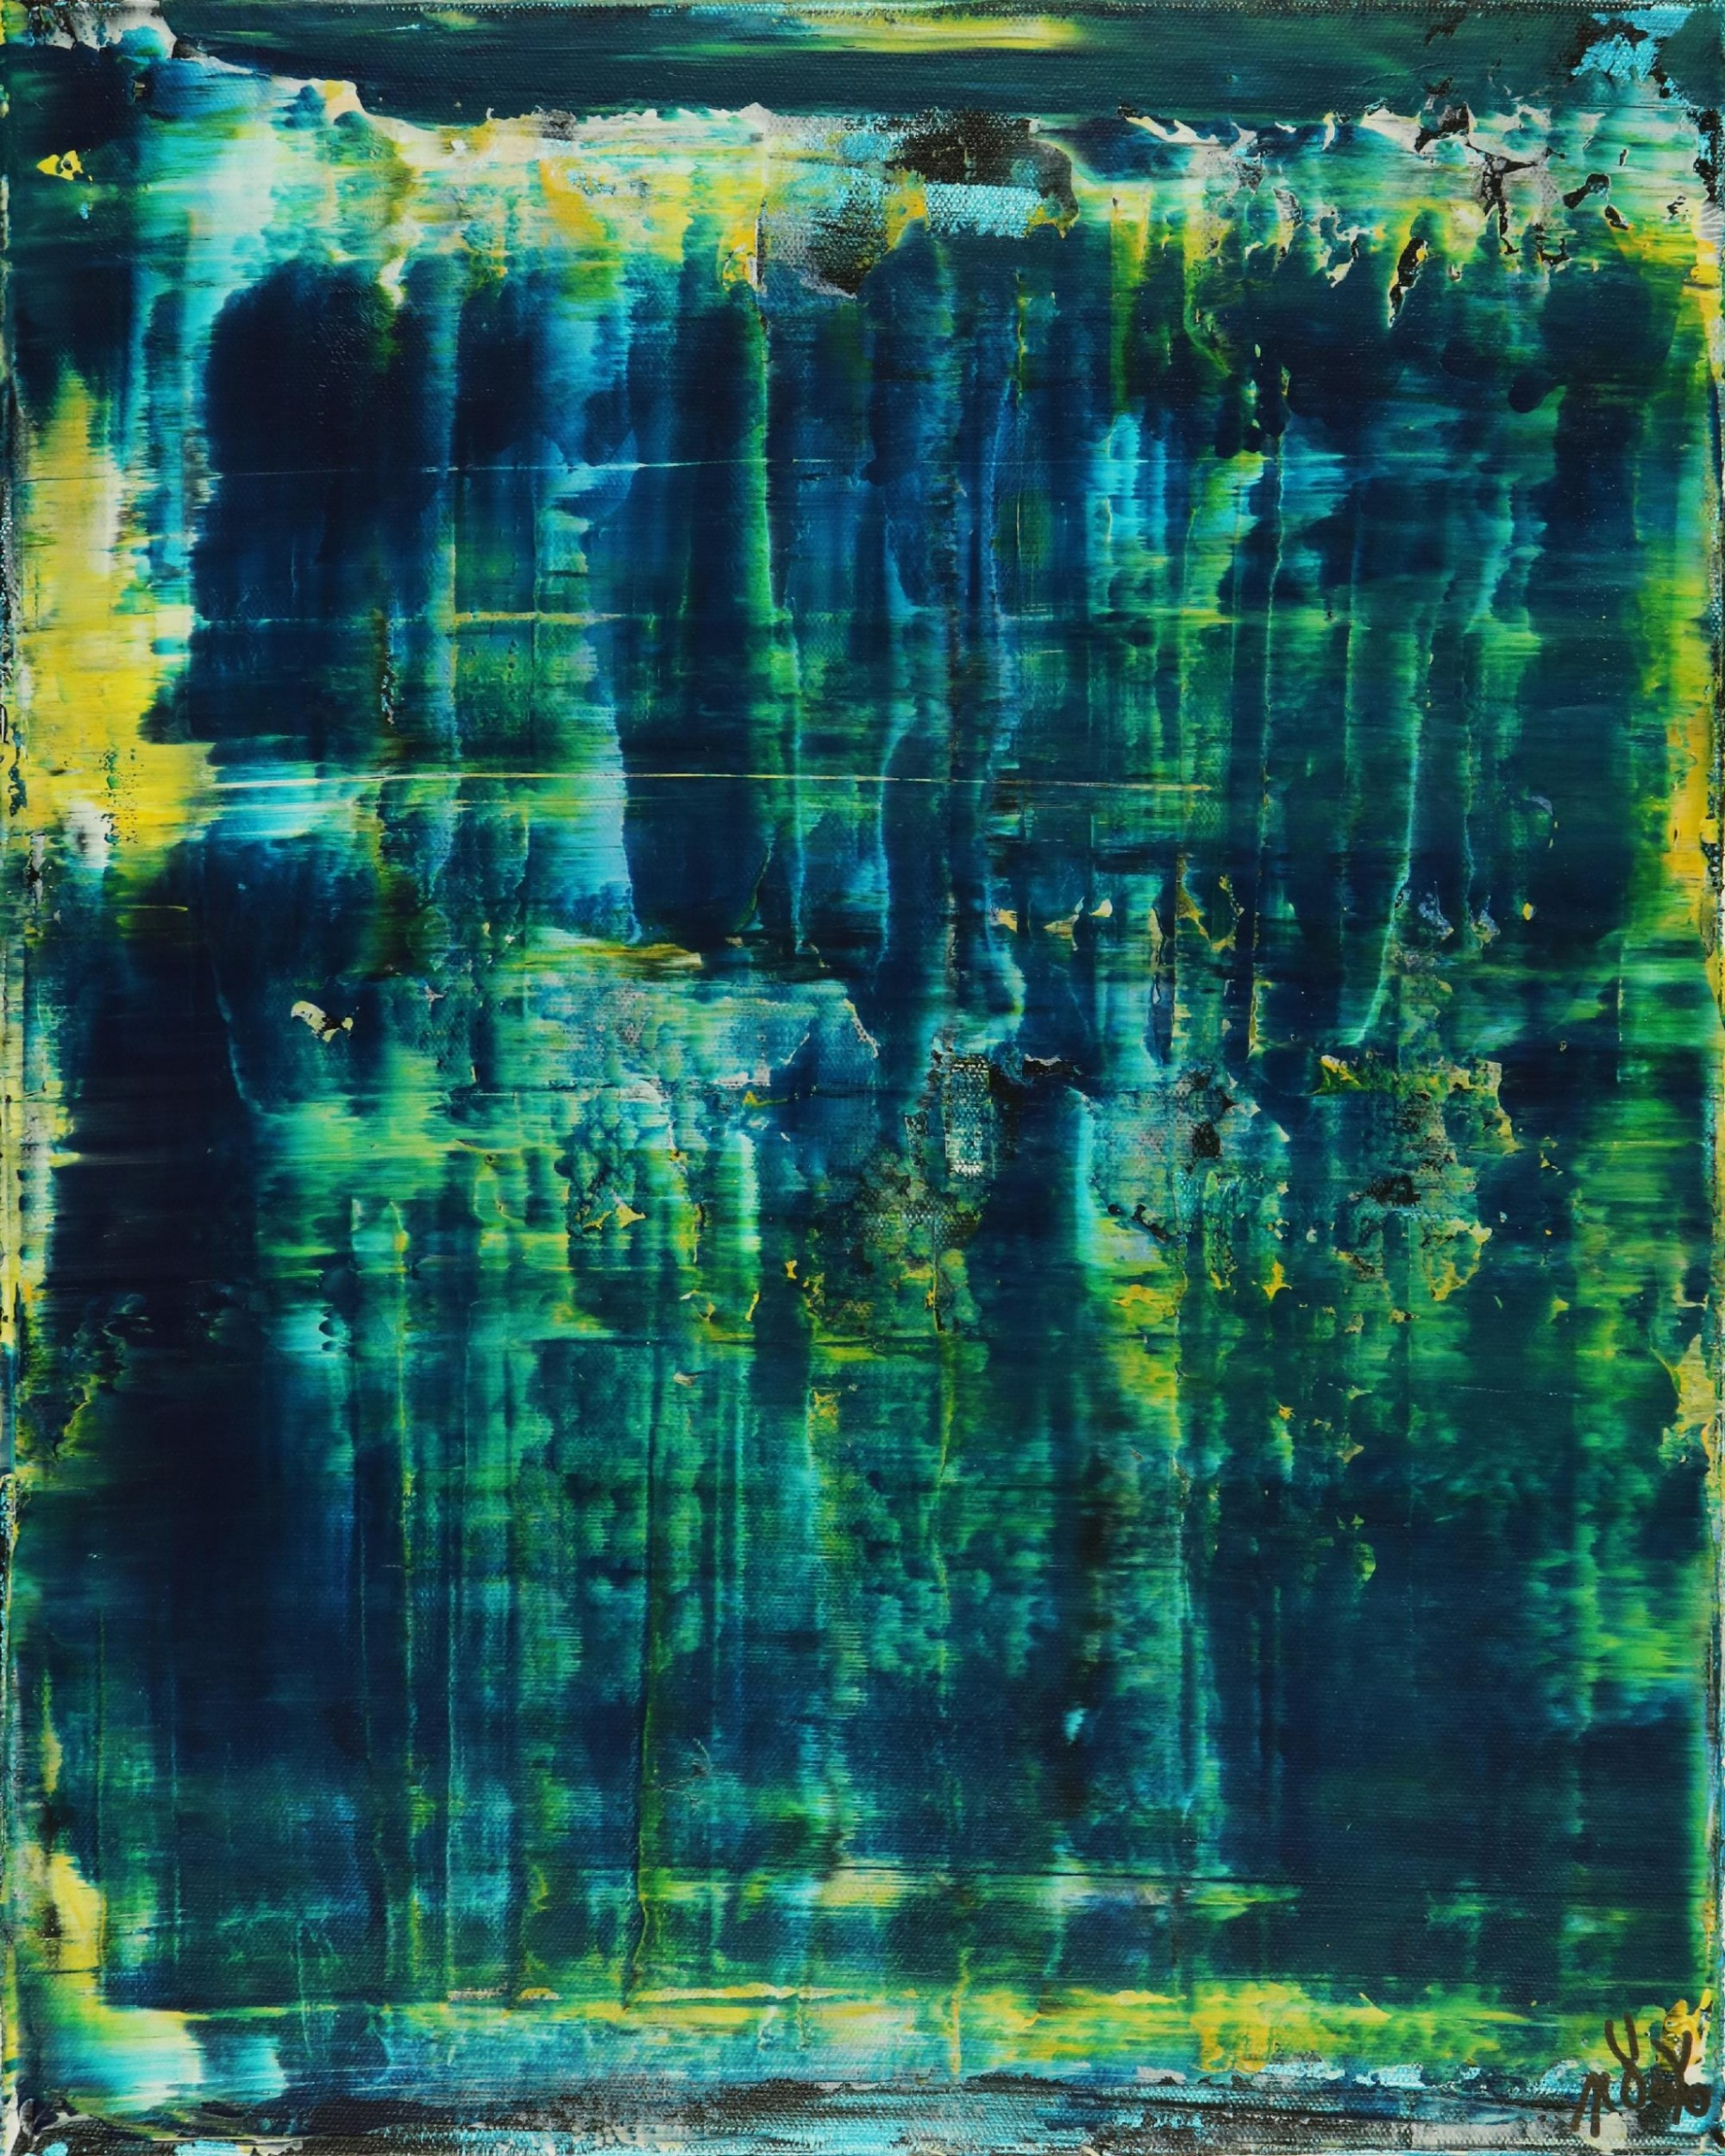 Full canvas - Emerald Forest Spectra 3 by Nestor Toro